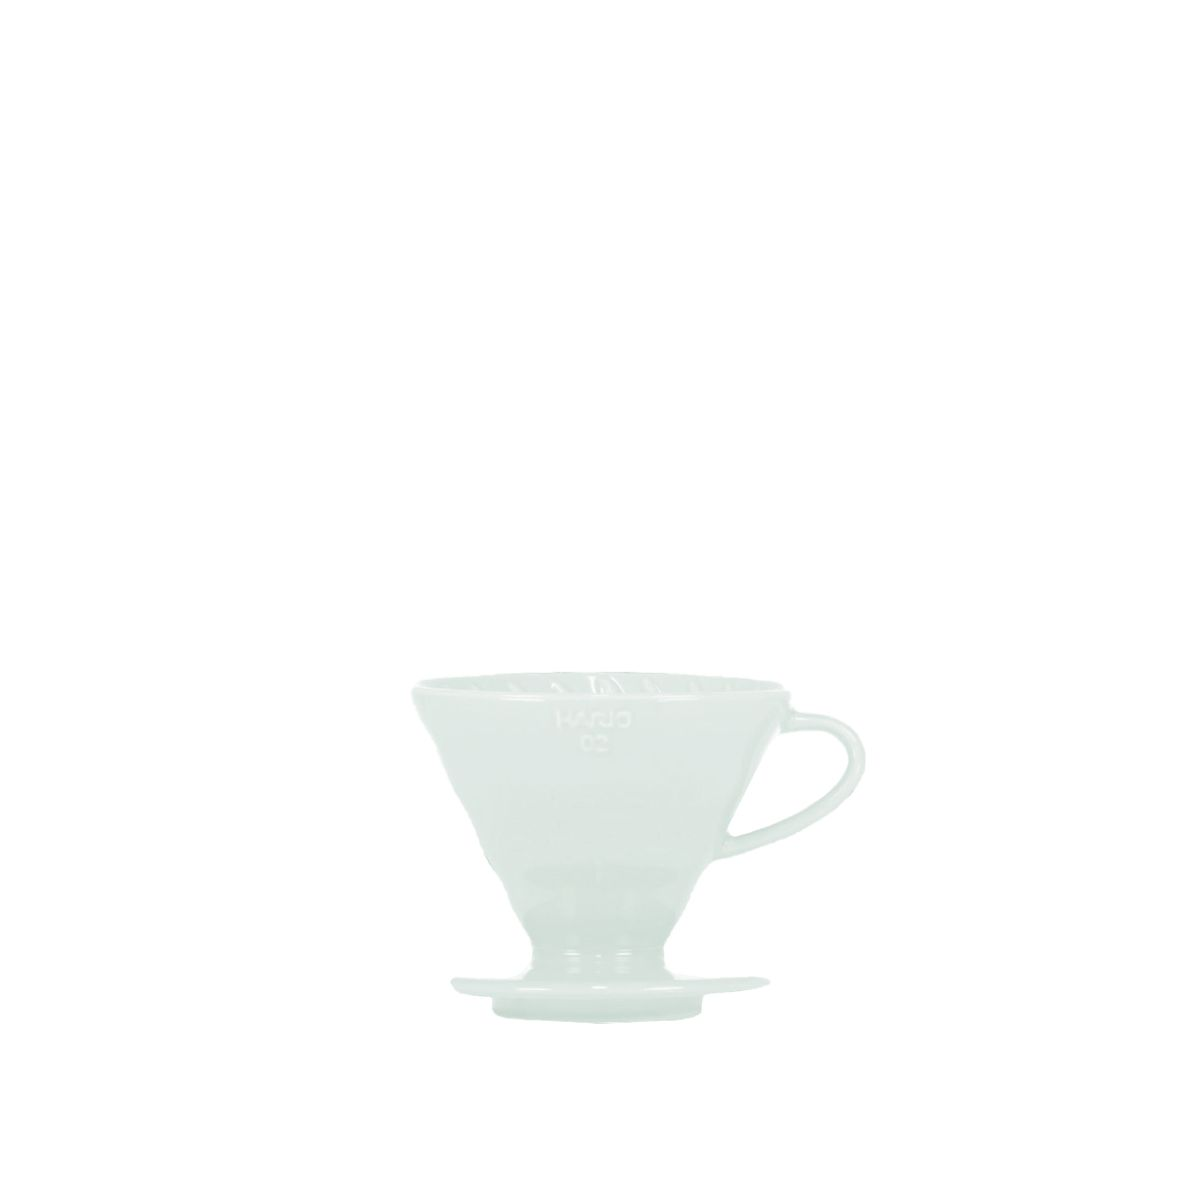 V60 Porcelain Dripper Hario [3/4 cups] - Light blue